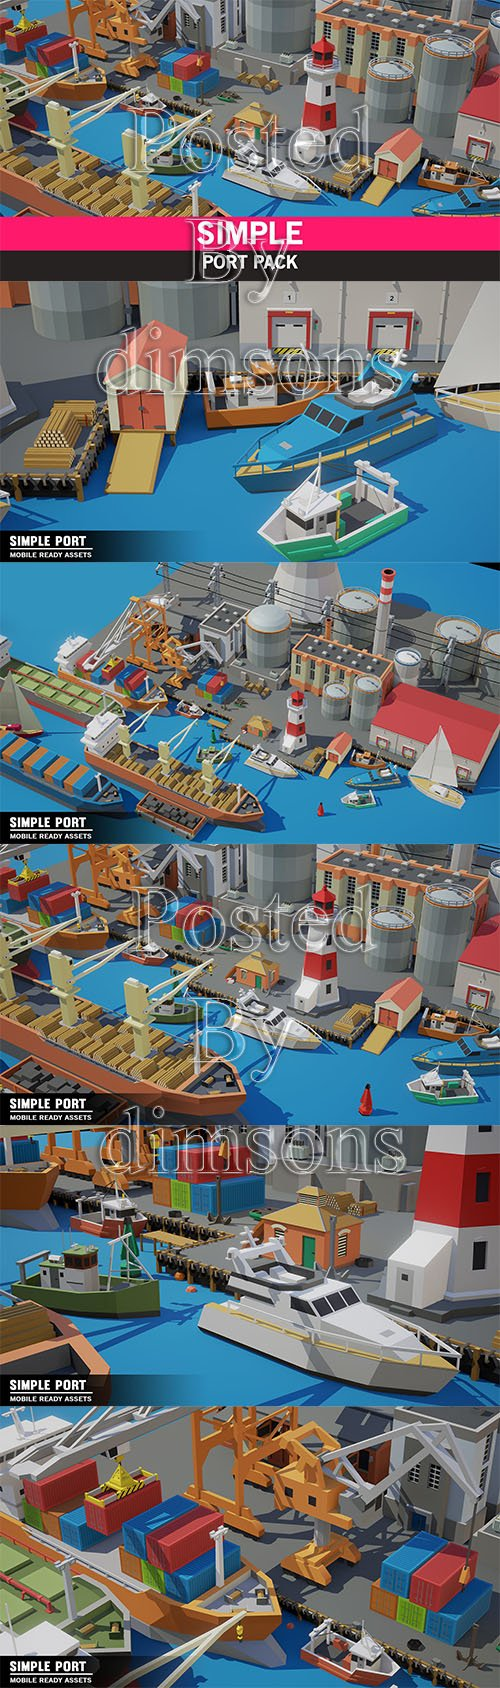 Simple Port - Cartoon Assets Low-poly 3D model